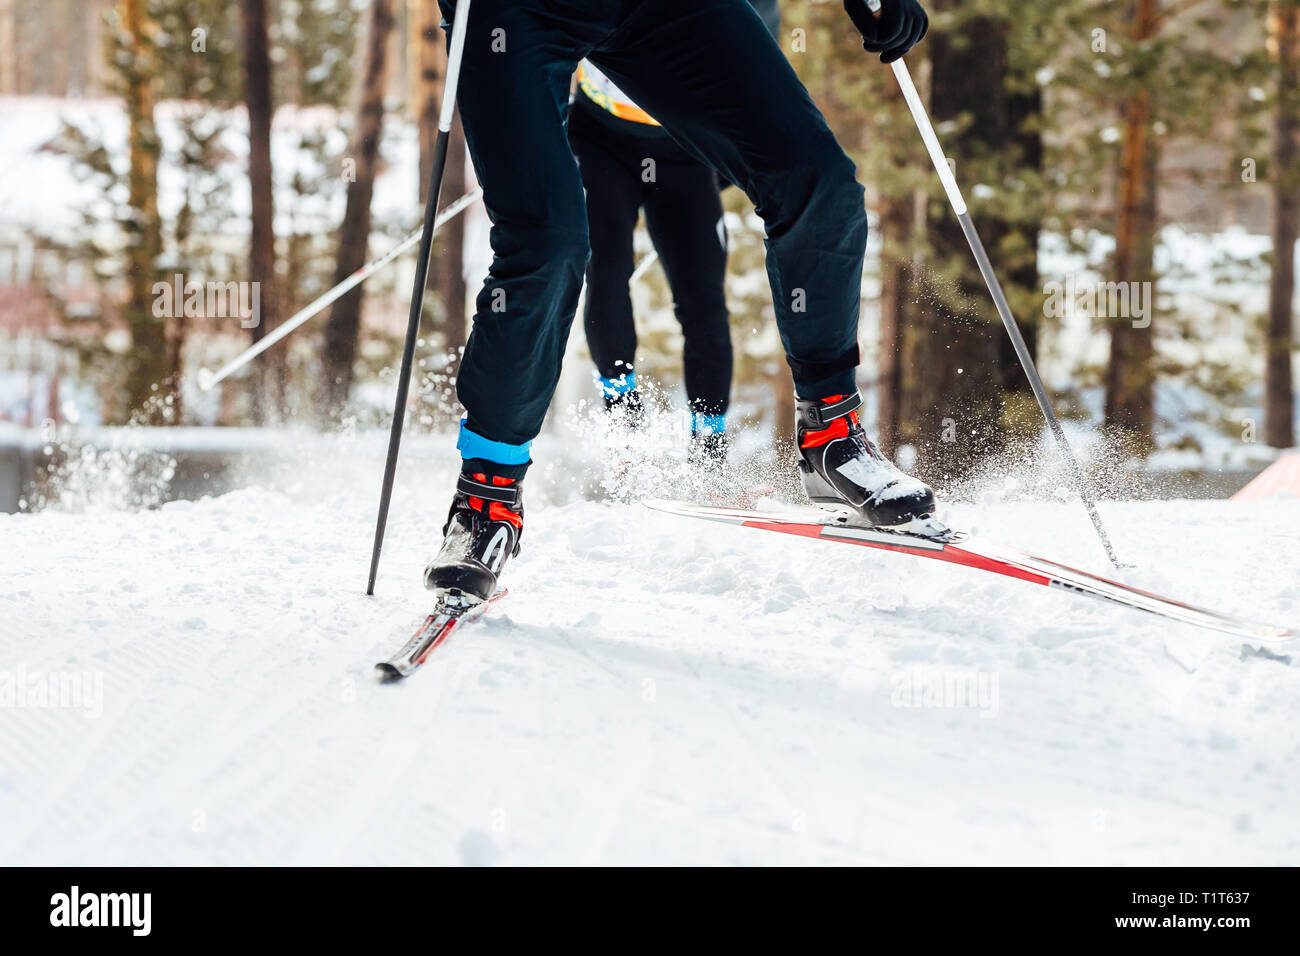 two skiers downhill skiing cross country race - Stock Image